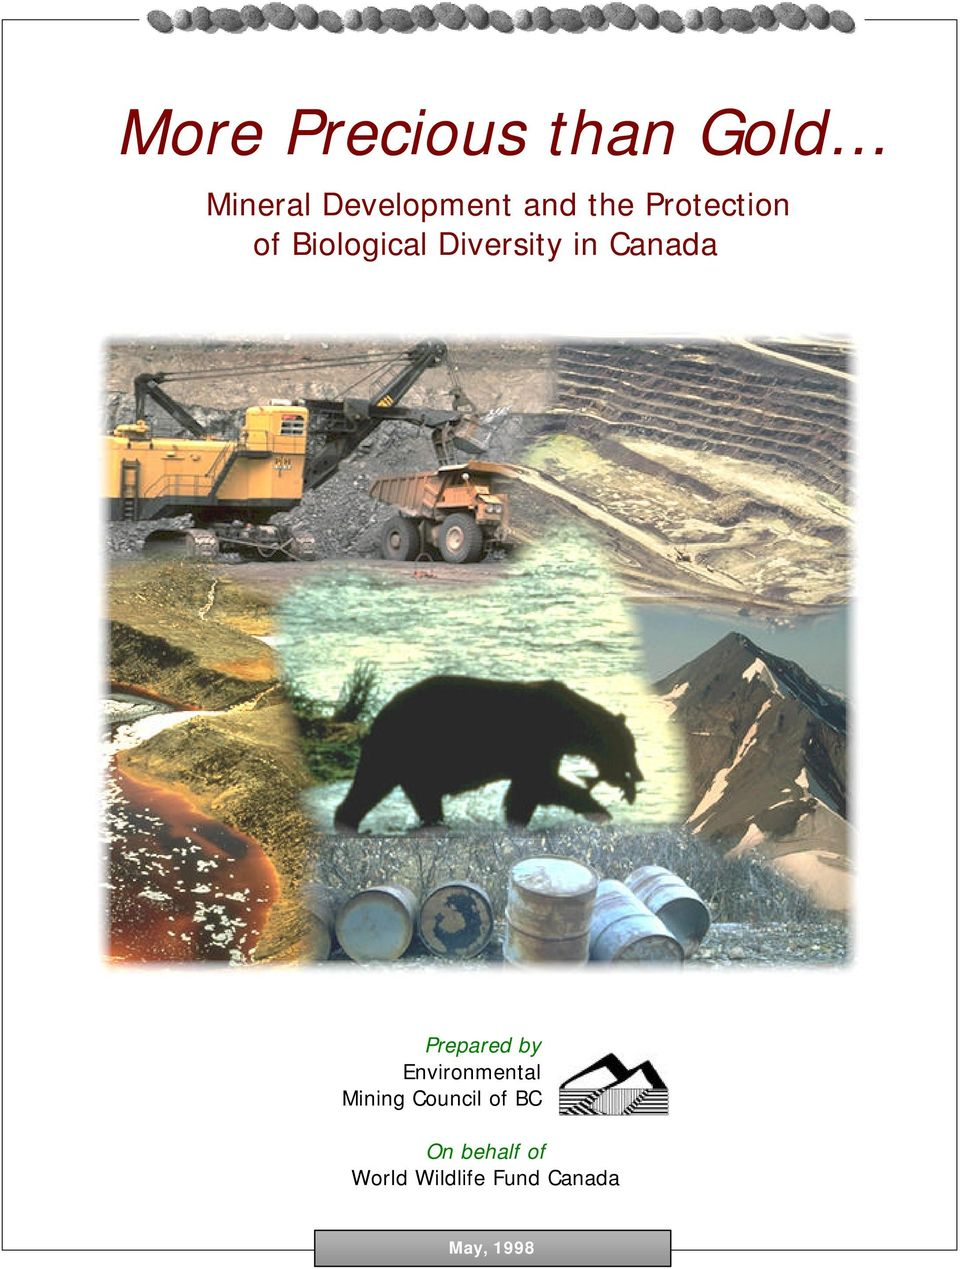 Prepared by Environmental Mining Council of BC